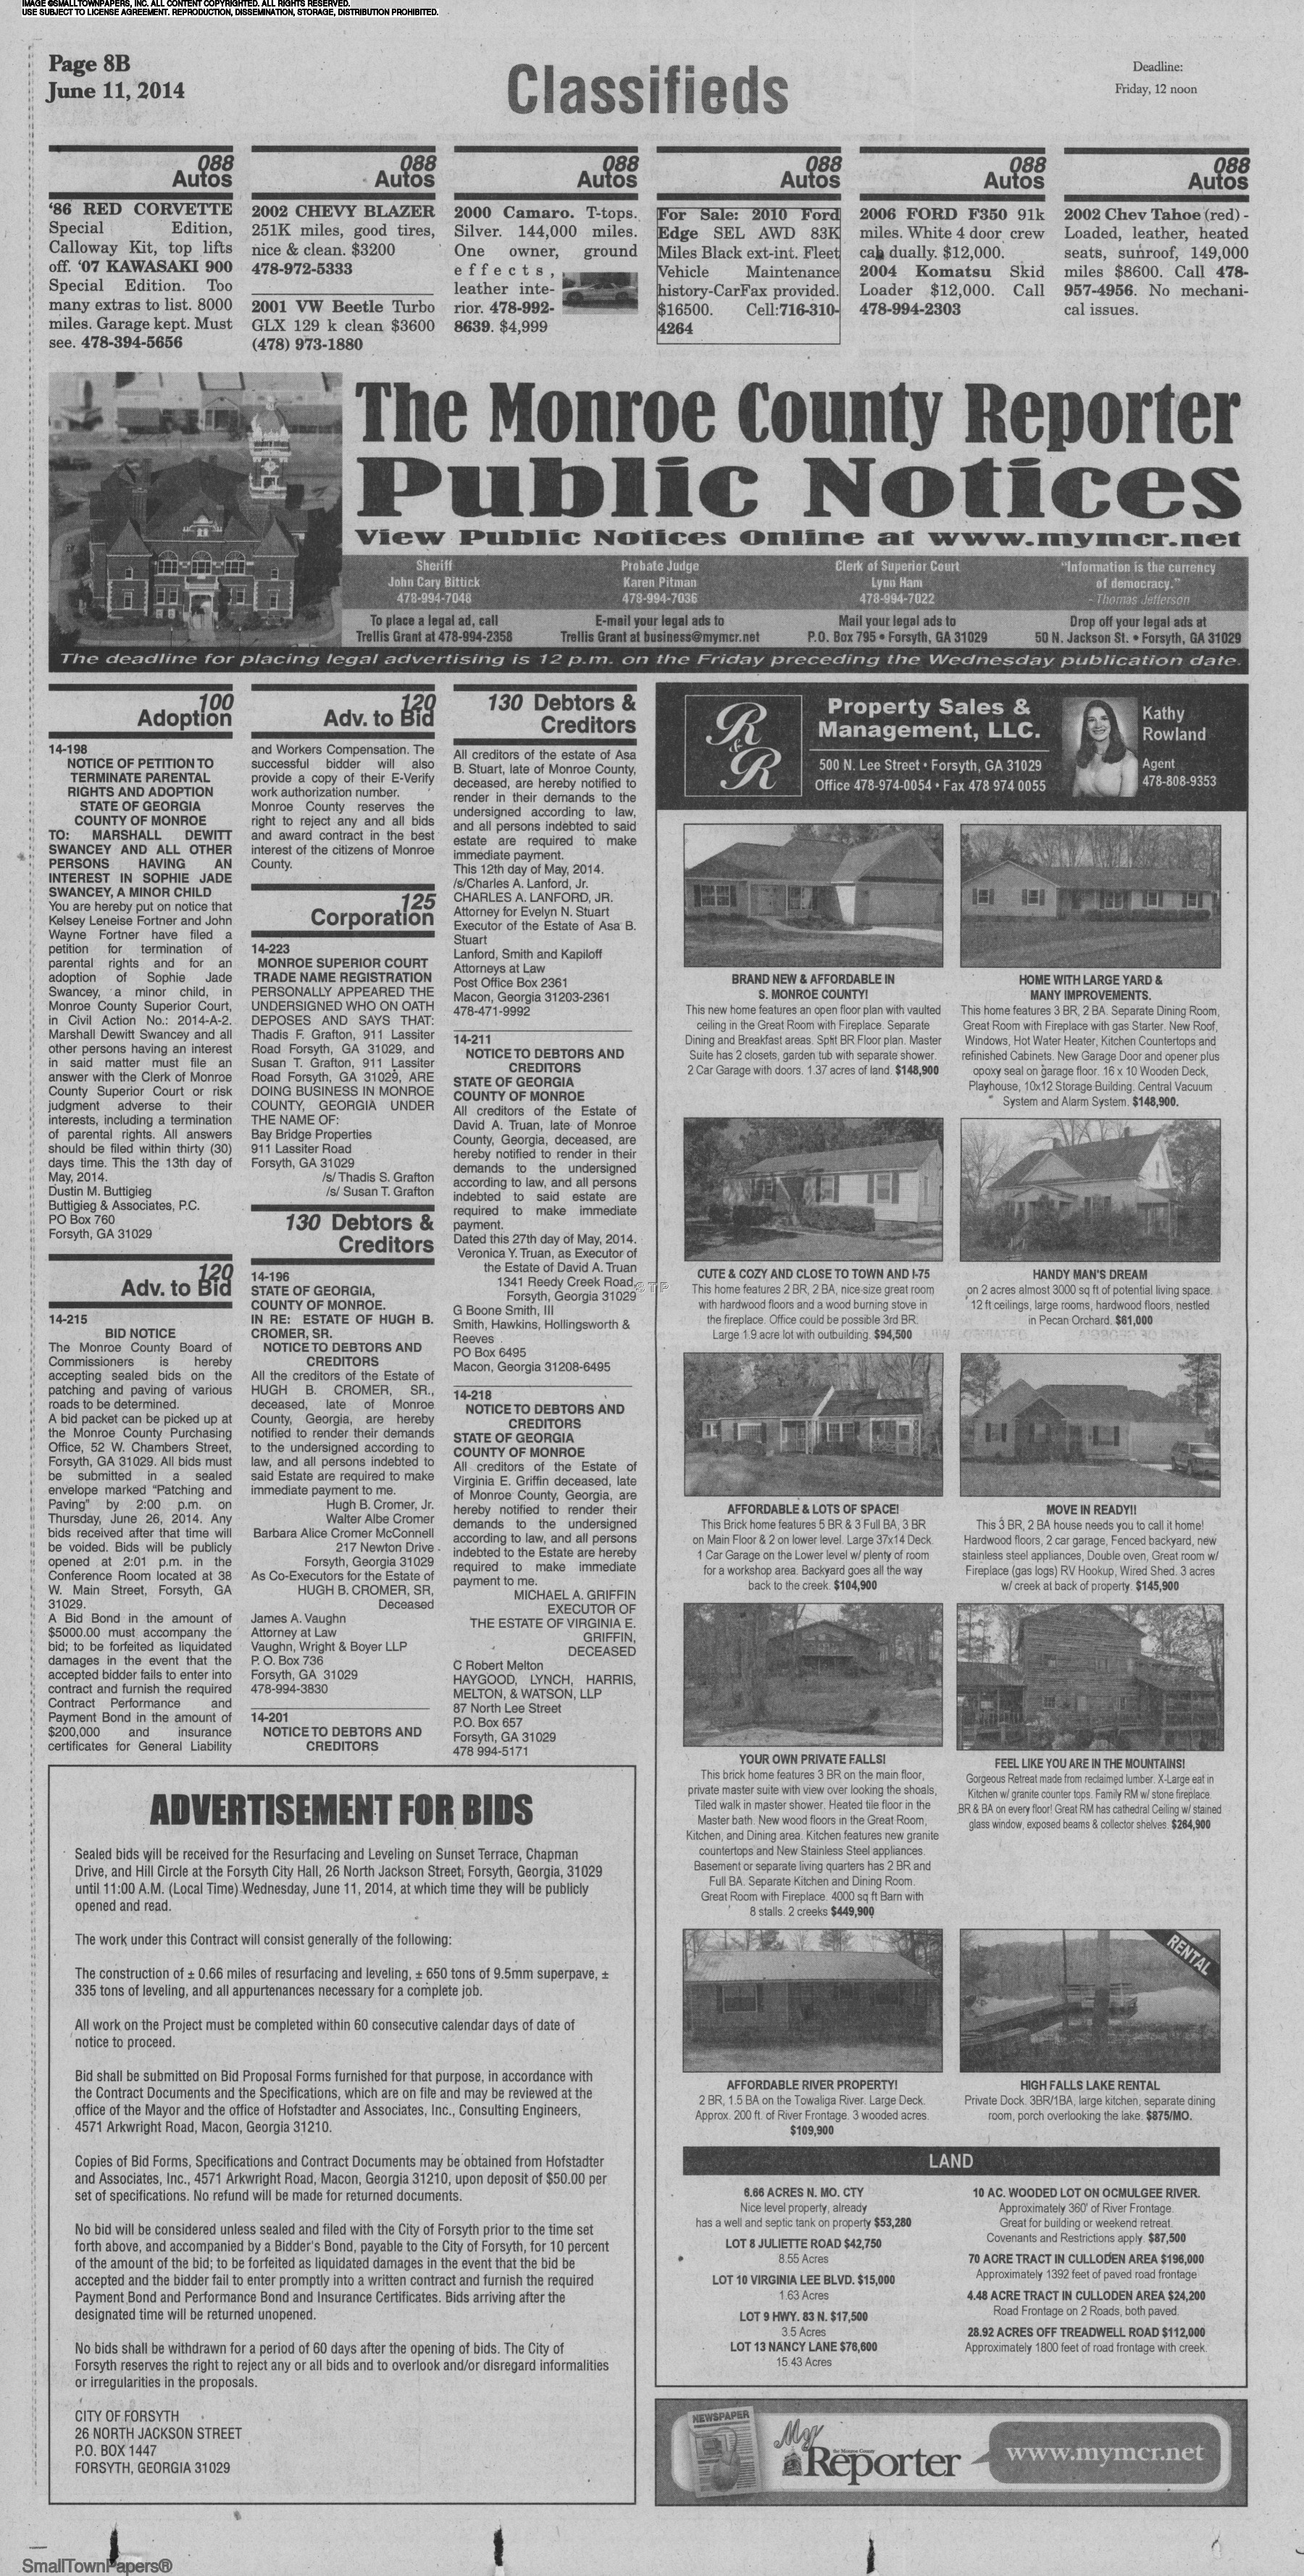 The Monroe County Reporter June 11, 2014: Page 20